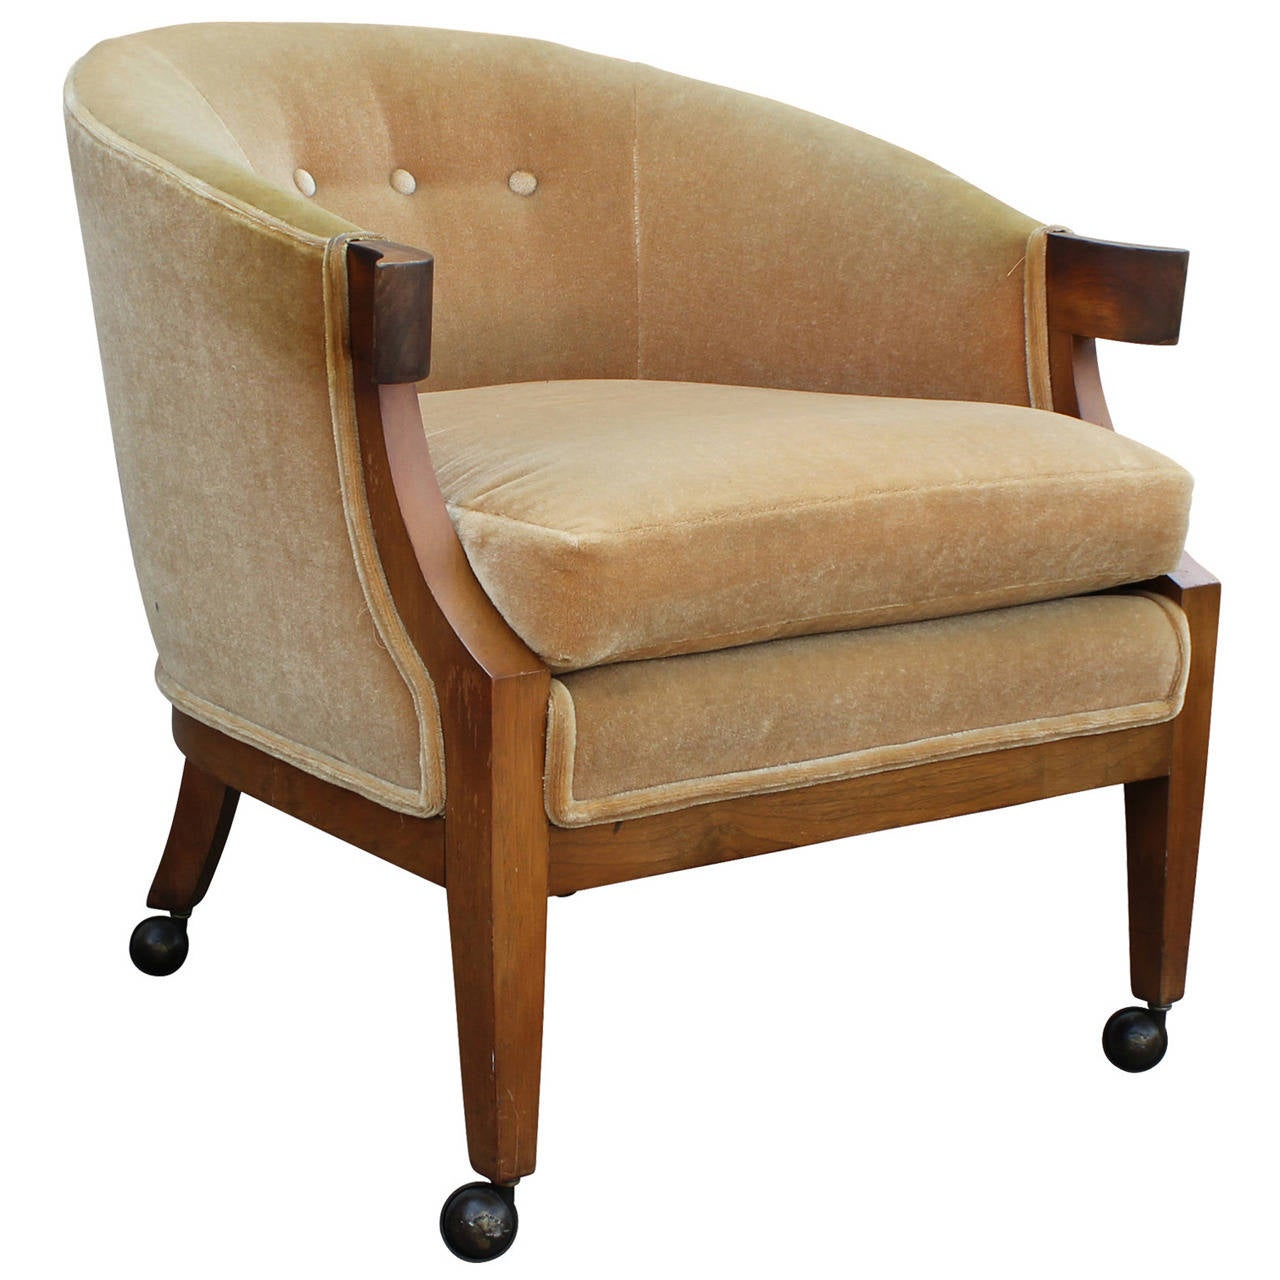 Barrel Chairs Elegant Hollywood Regency Barrel Back Gold Mohair Chair By